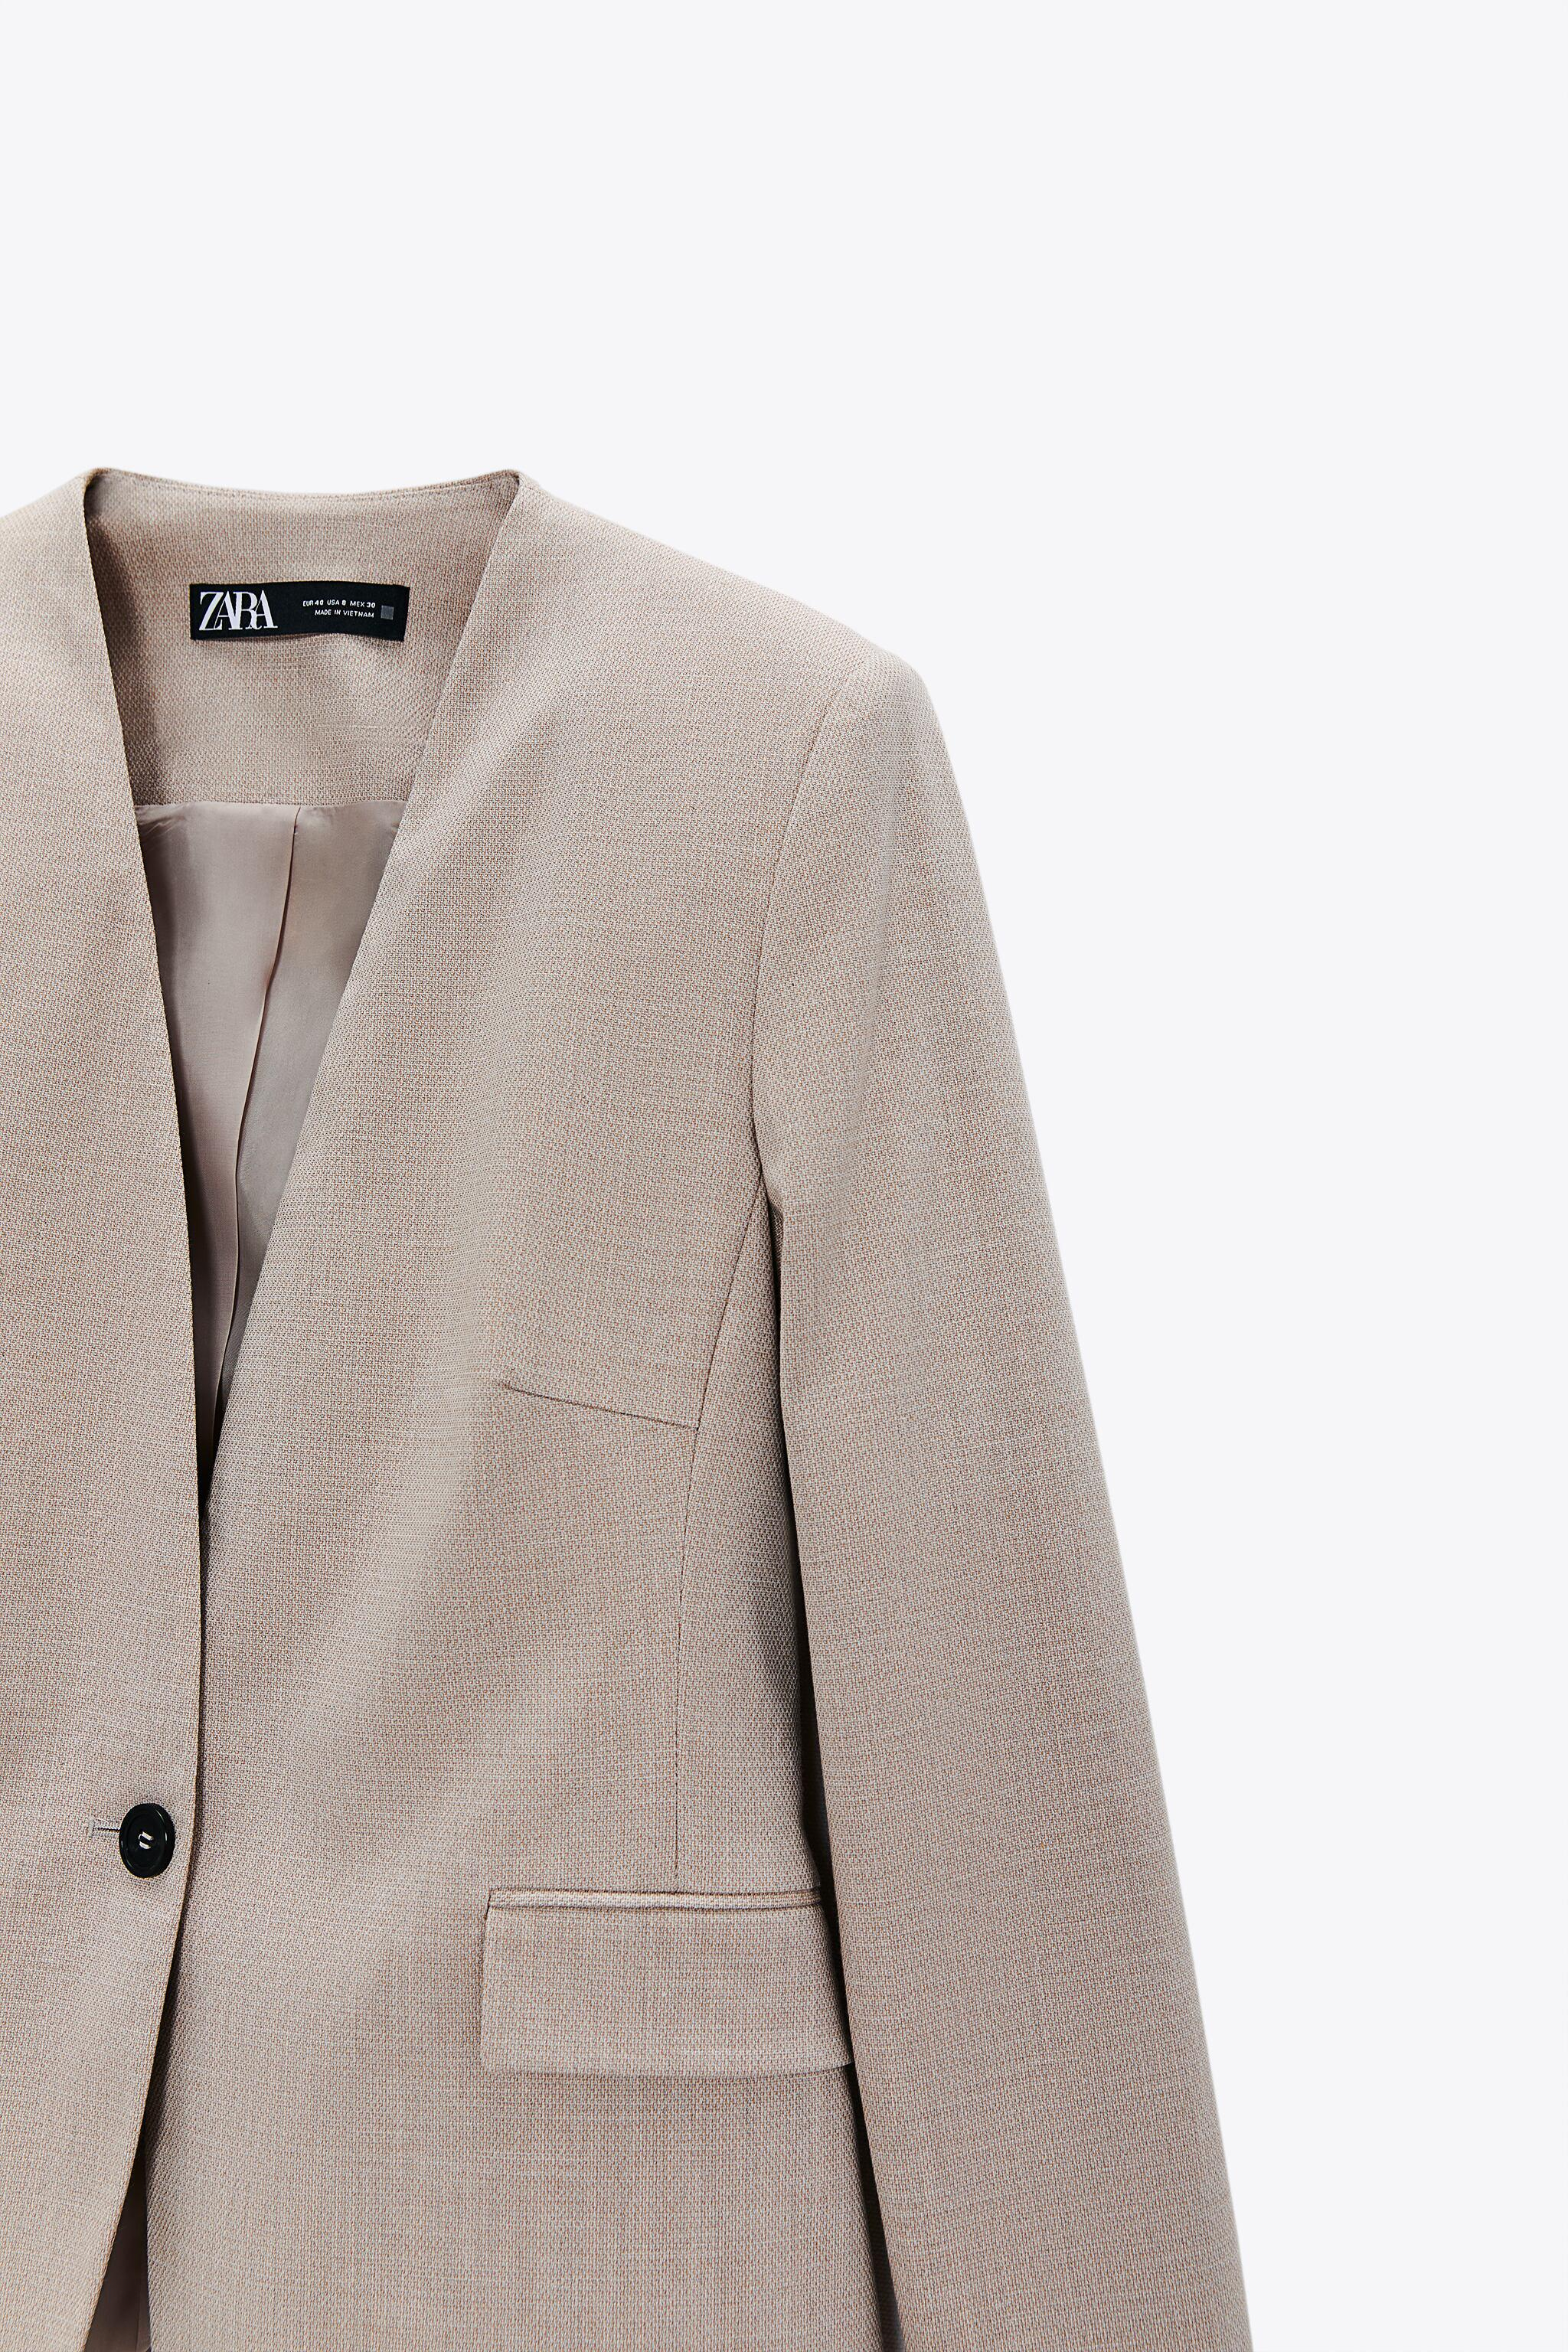 LAPELLESS FITTED BLAZER 4